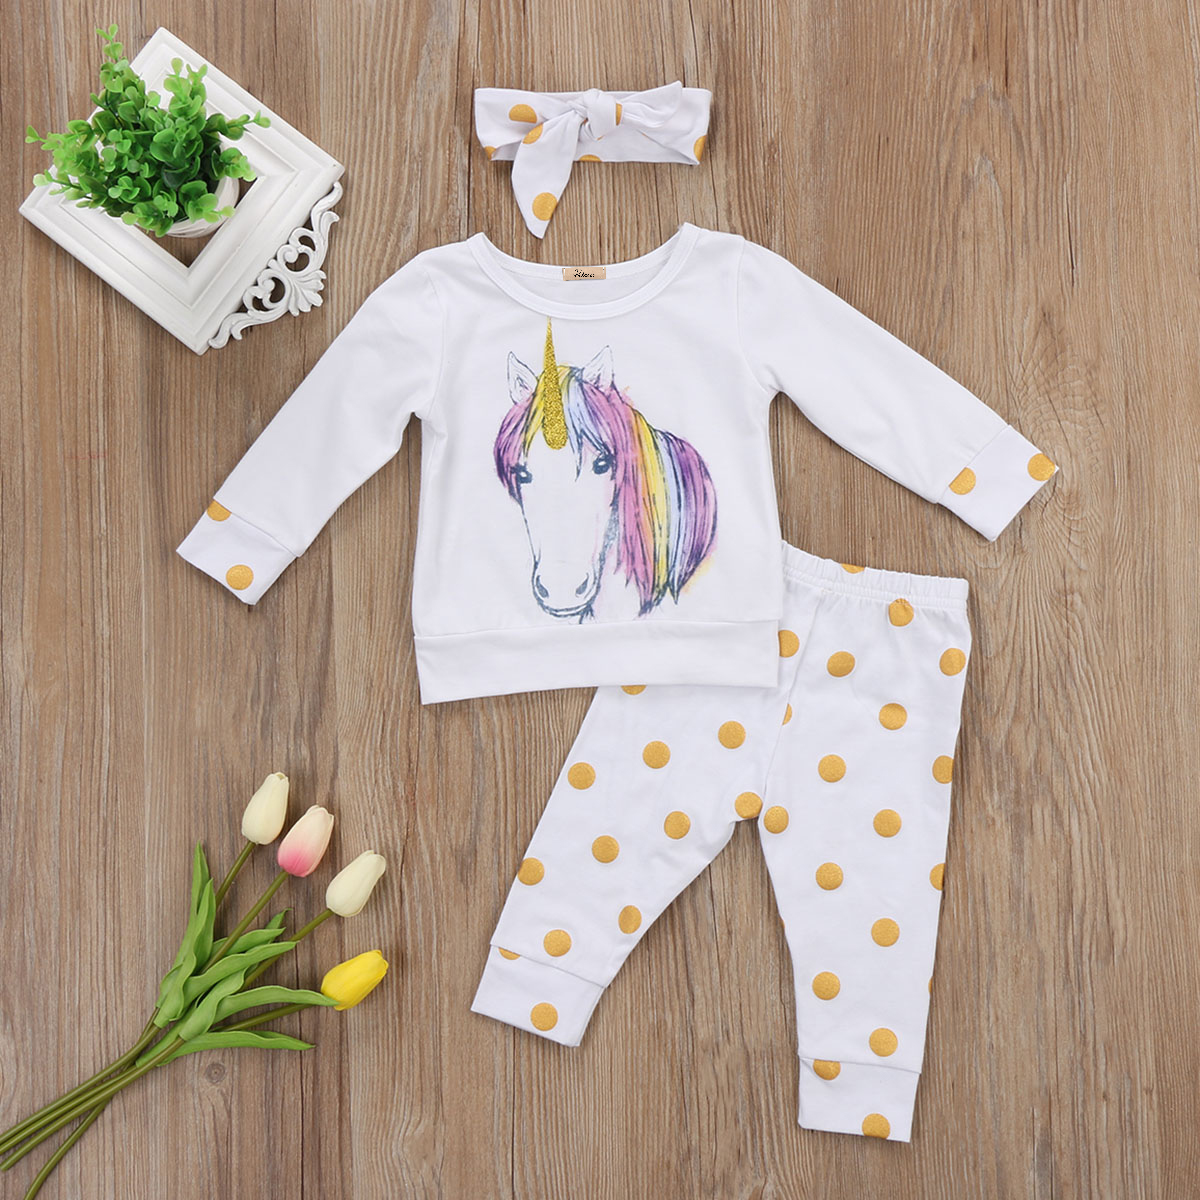 e97408e07adbc UK Unicorn Newborn Baby Girl Kid Outfit Clothes Long sleeve T shirt dot  Pants Headband 3pcs autumn clothes Set-in Clothing Sets from Mother & Kids  on ...